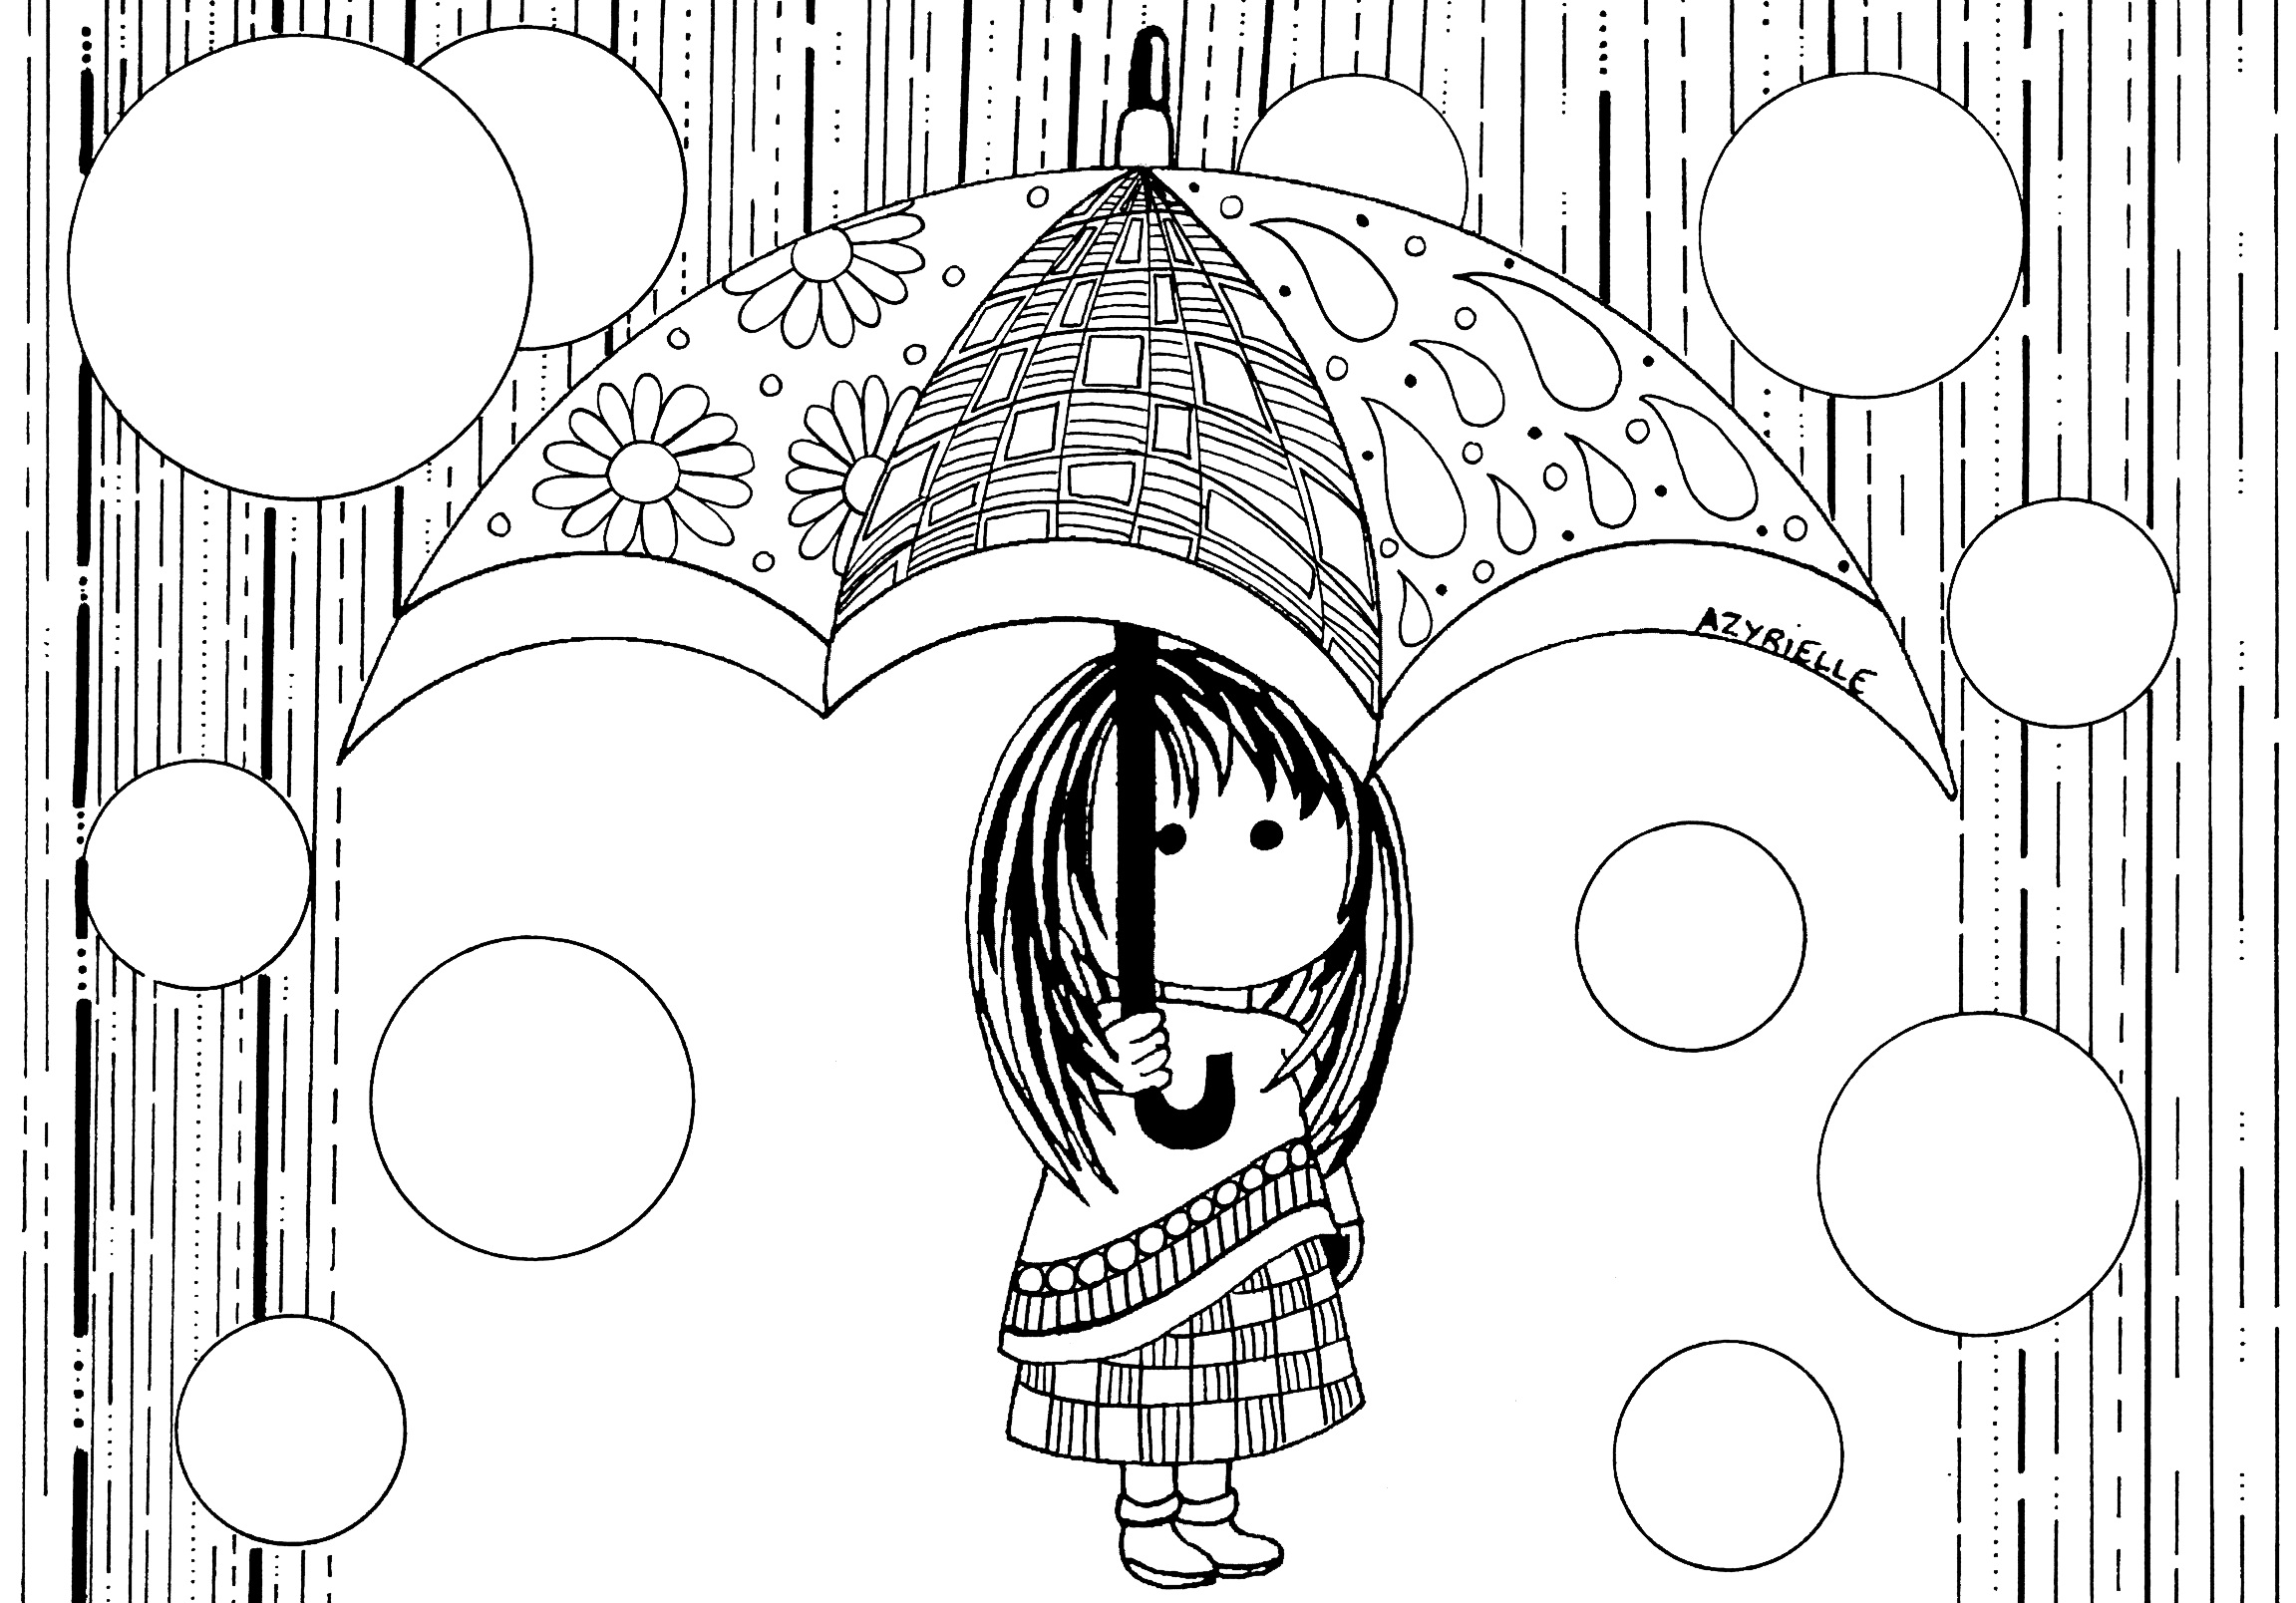 Rain by azyrielle | Return to childhood - Coloring pages for adults ...